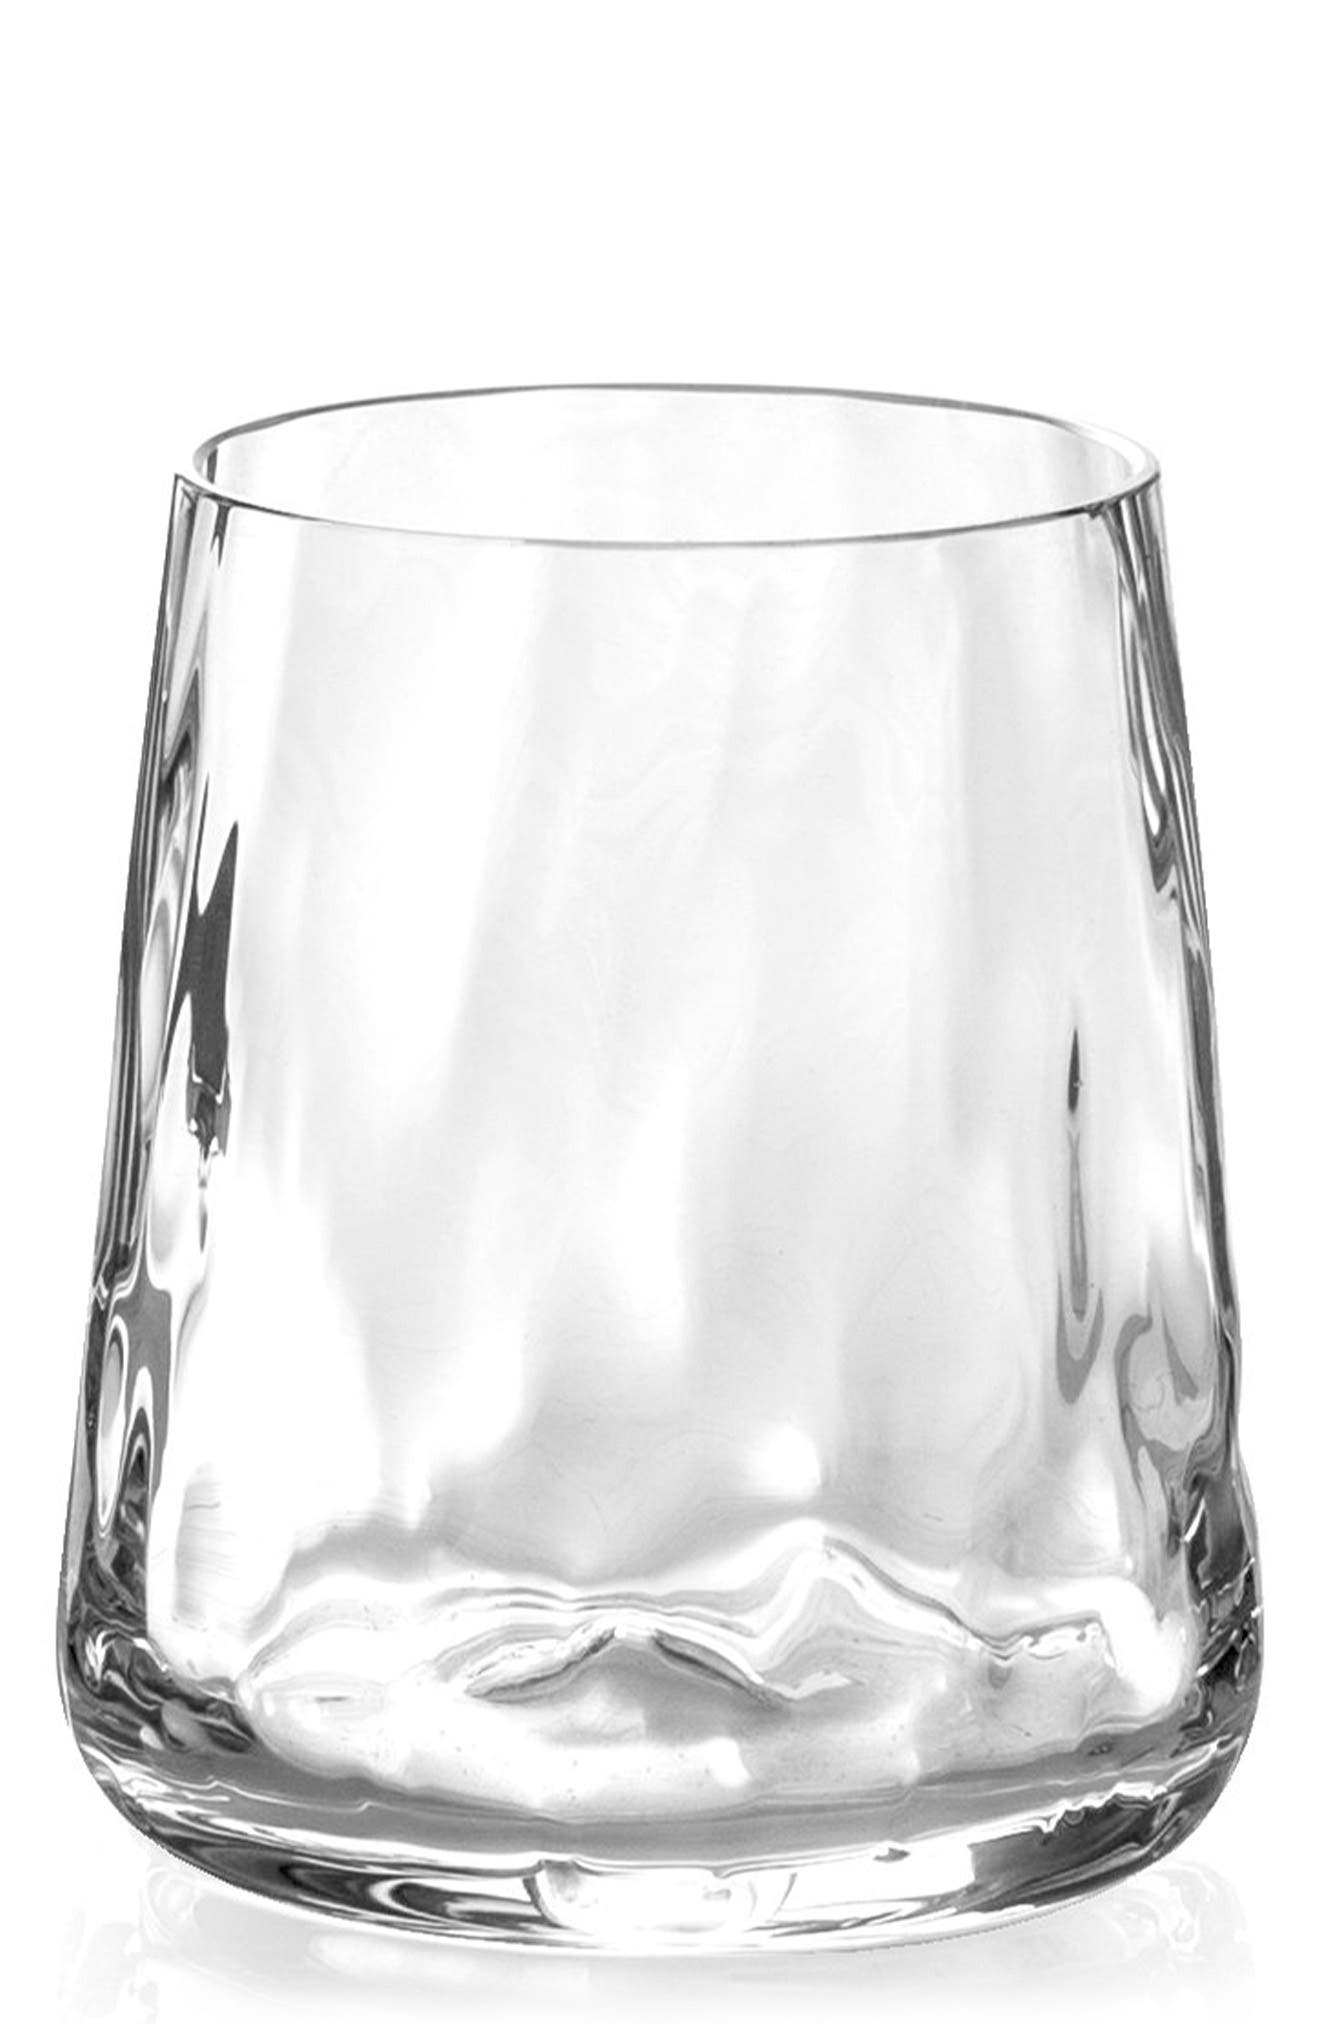 Main Image - Michael Aram Ripple Effect Set of 4 Double Old Fashioned Glasses